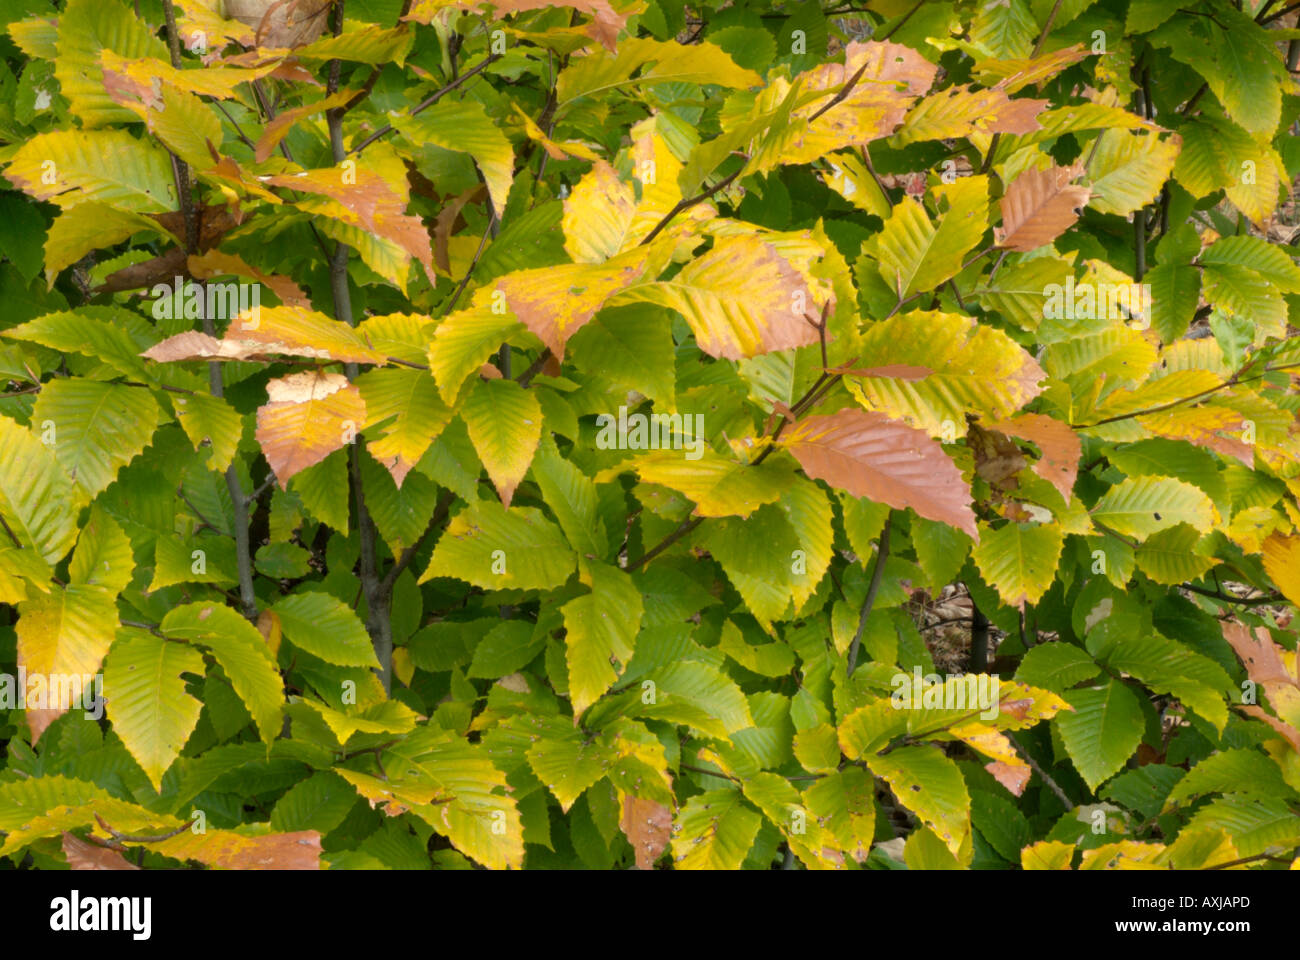 American beech trees (Fagus grandiflora) leafs changing colors ...